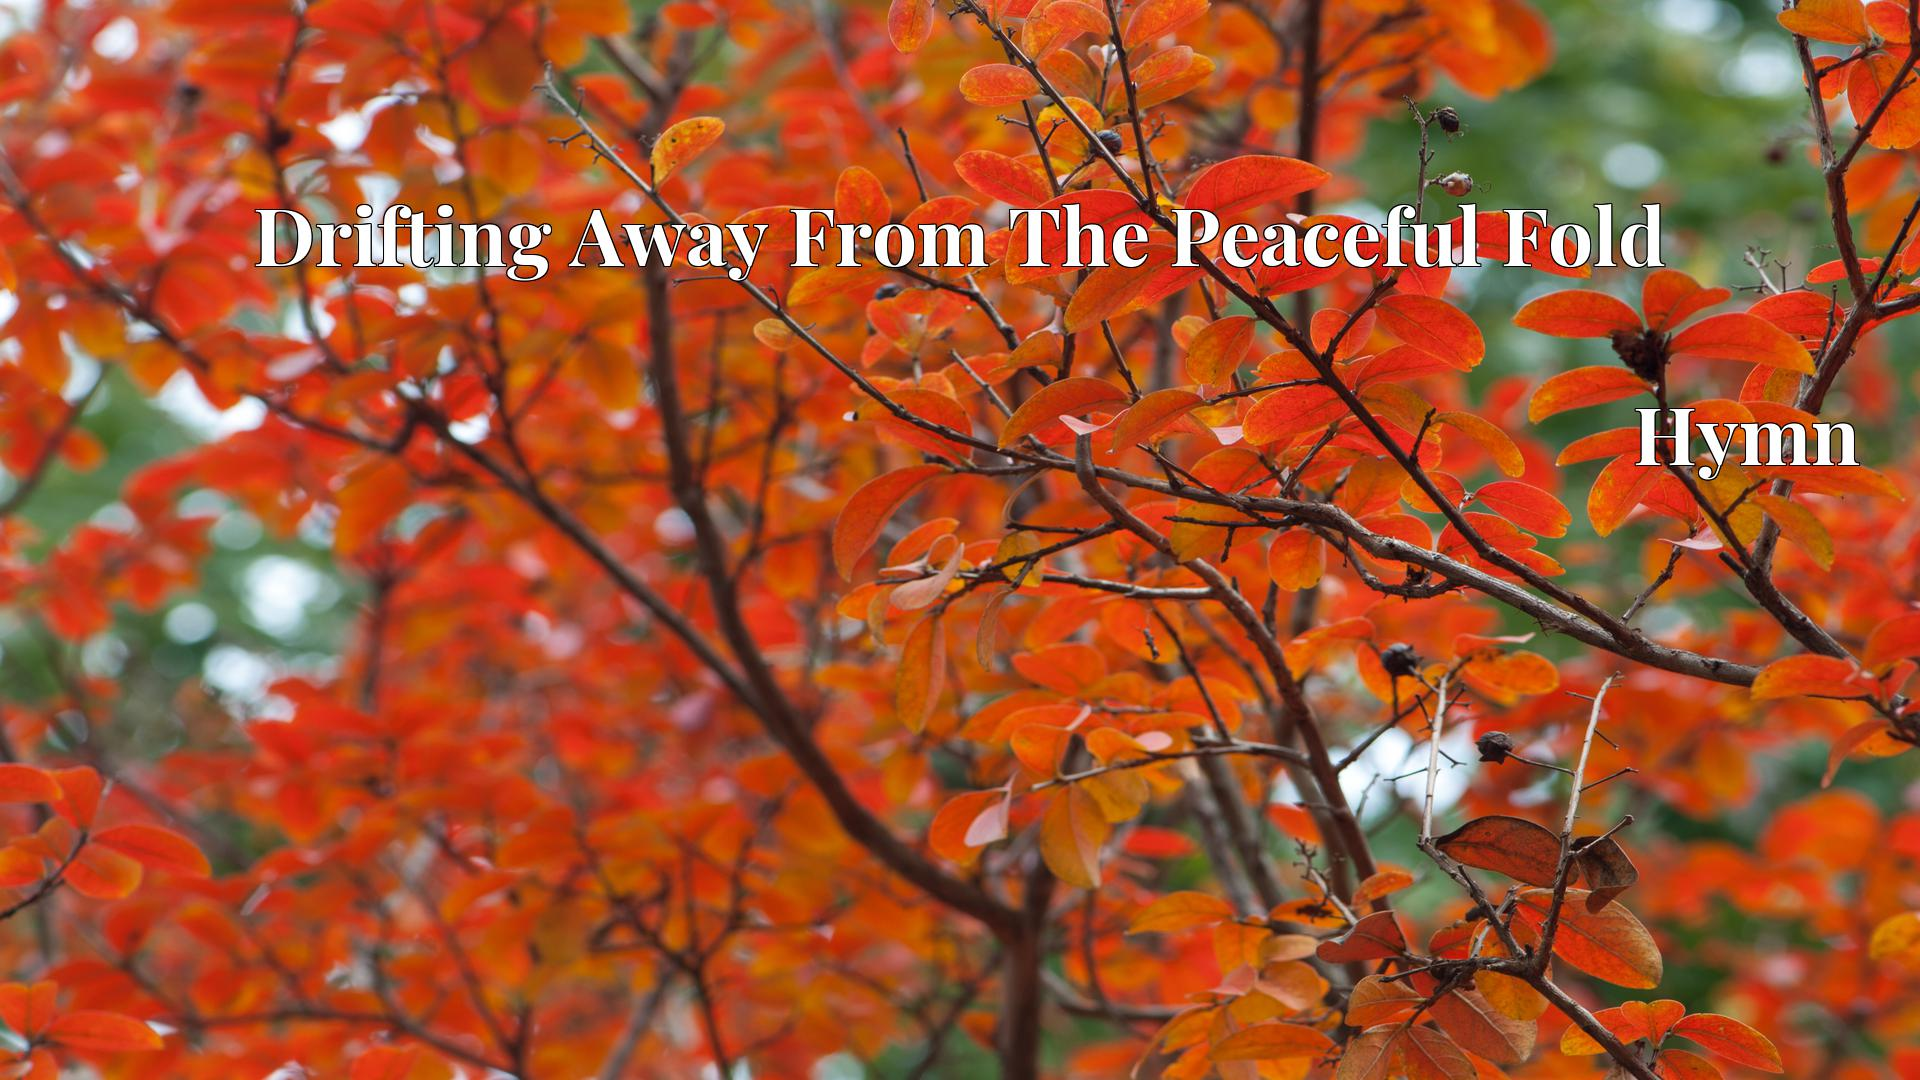 Drifting Away From The Peaceful Fold - Hymn